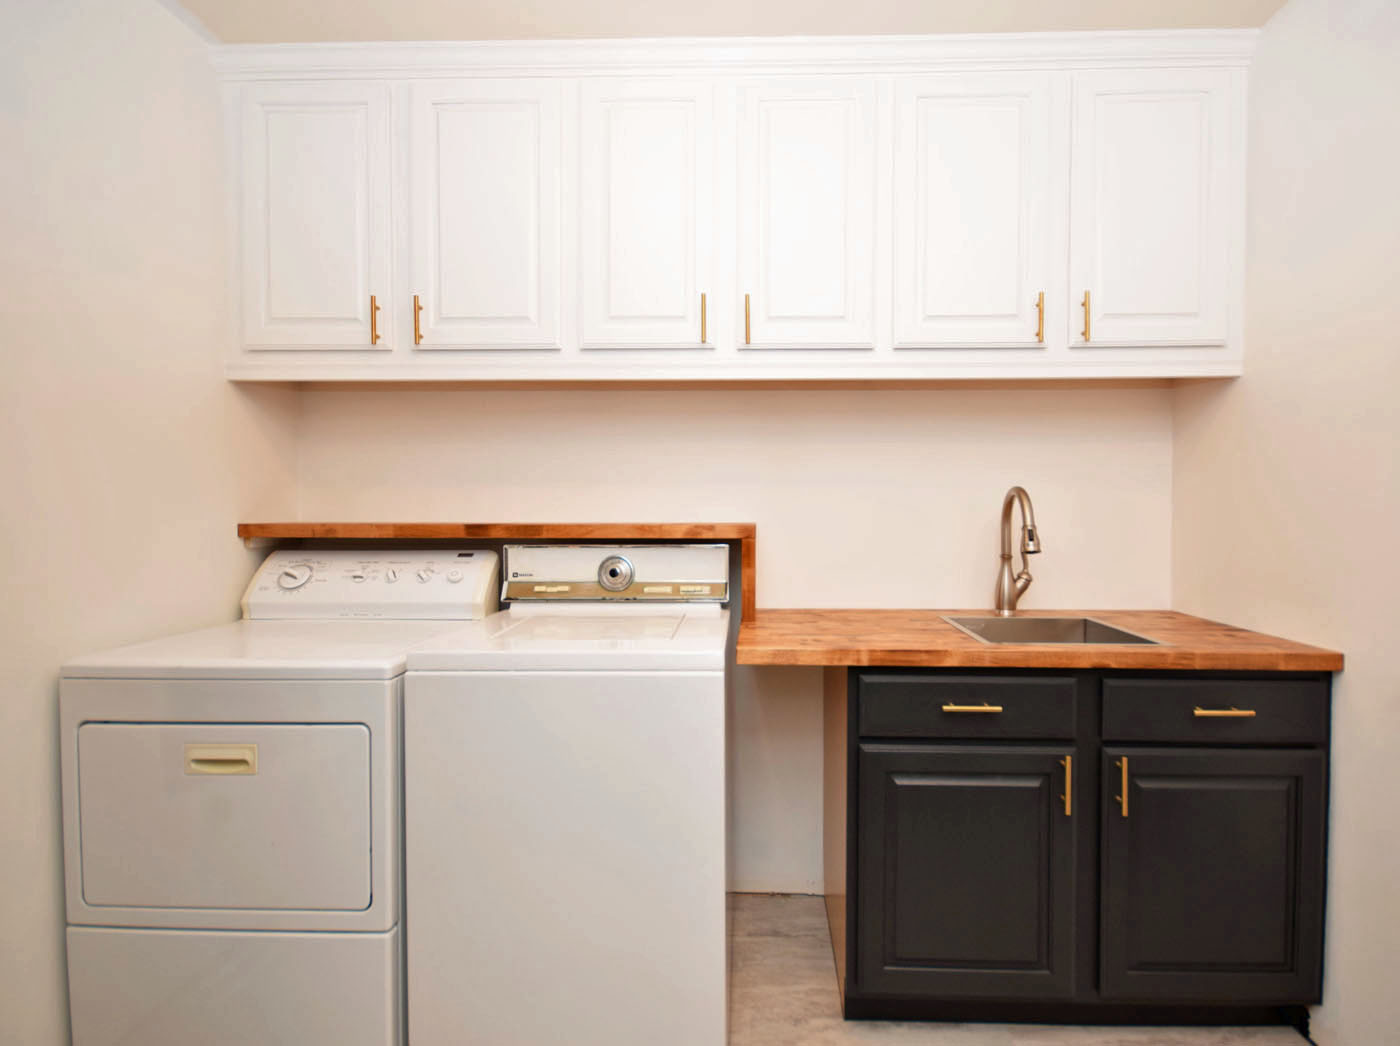 Mudroom Cabinets Painted Hardware Butcher Block Counter